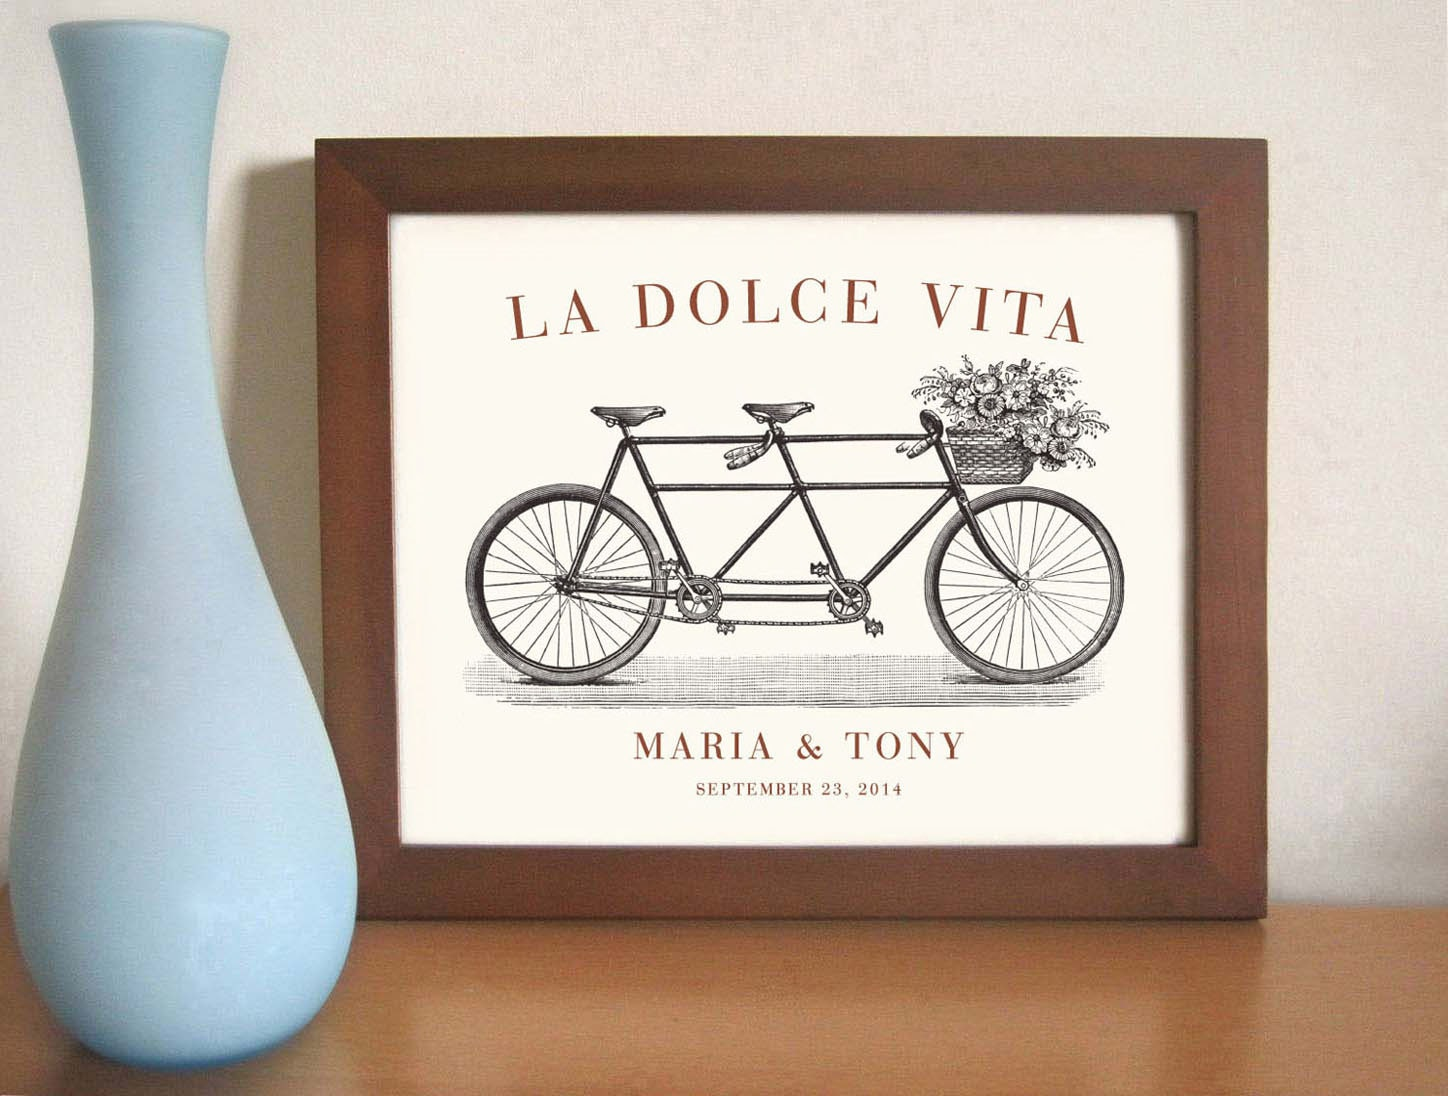 Italian Wedding Gifts: Unique Engagement Gift Italian Wedding Decor Unique Wedding